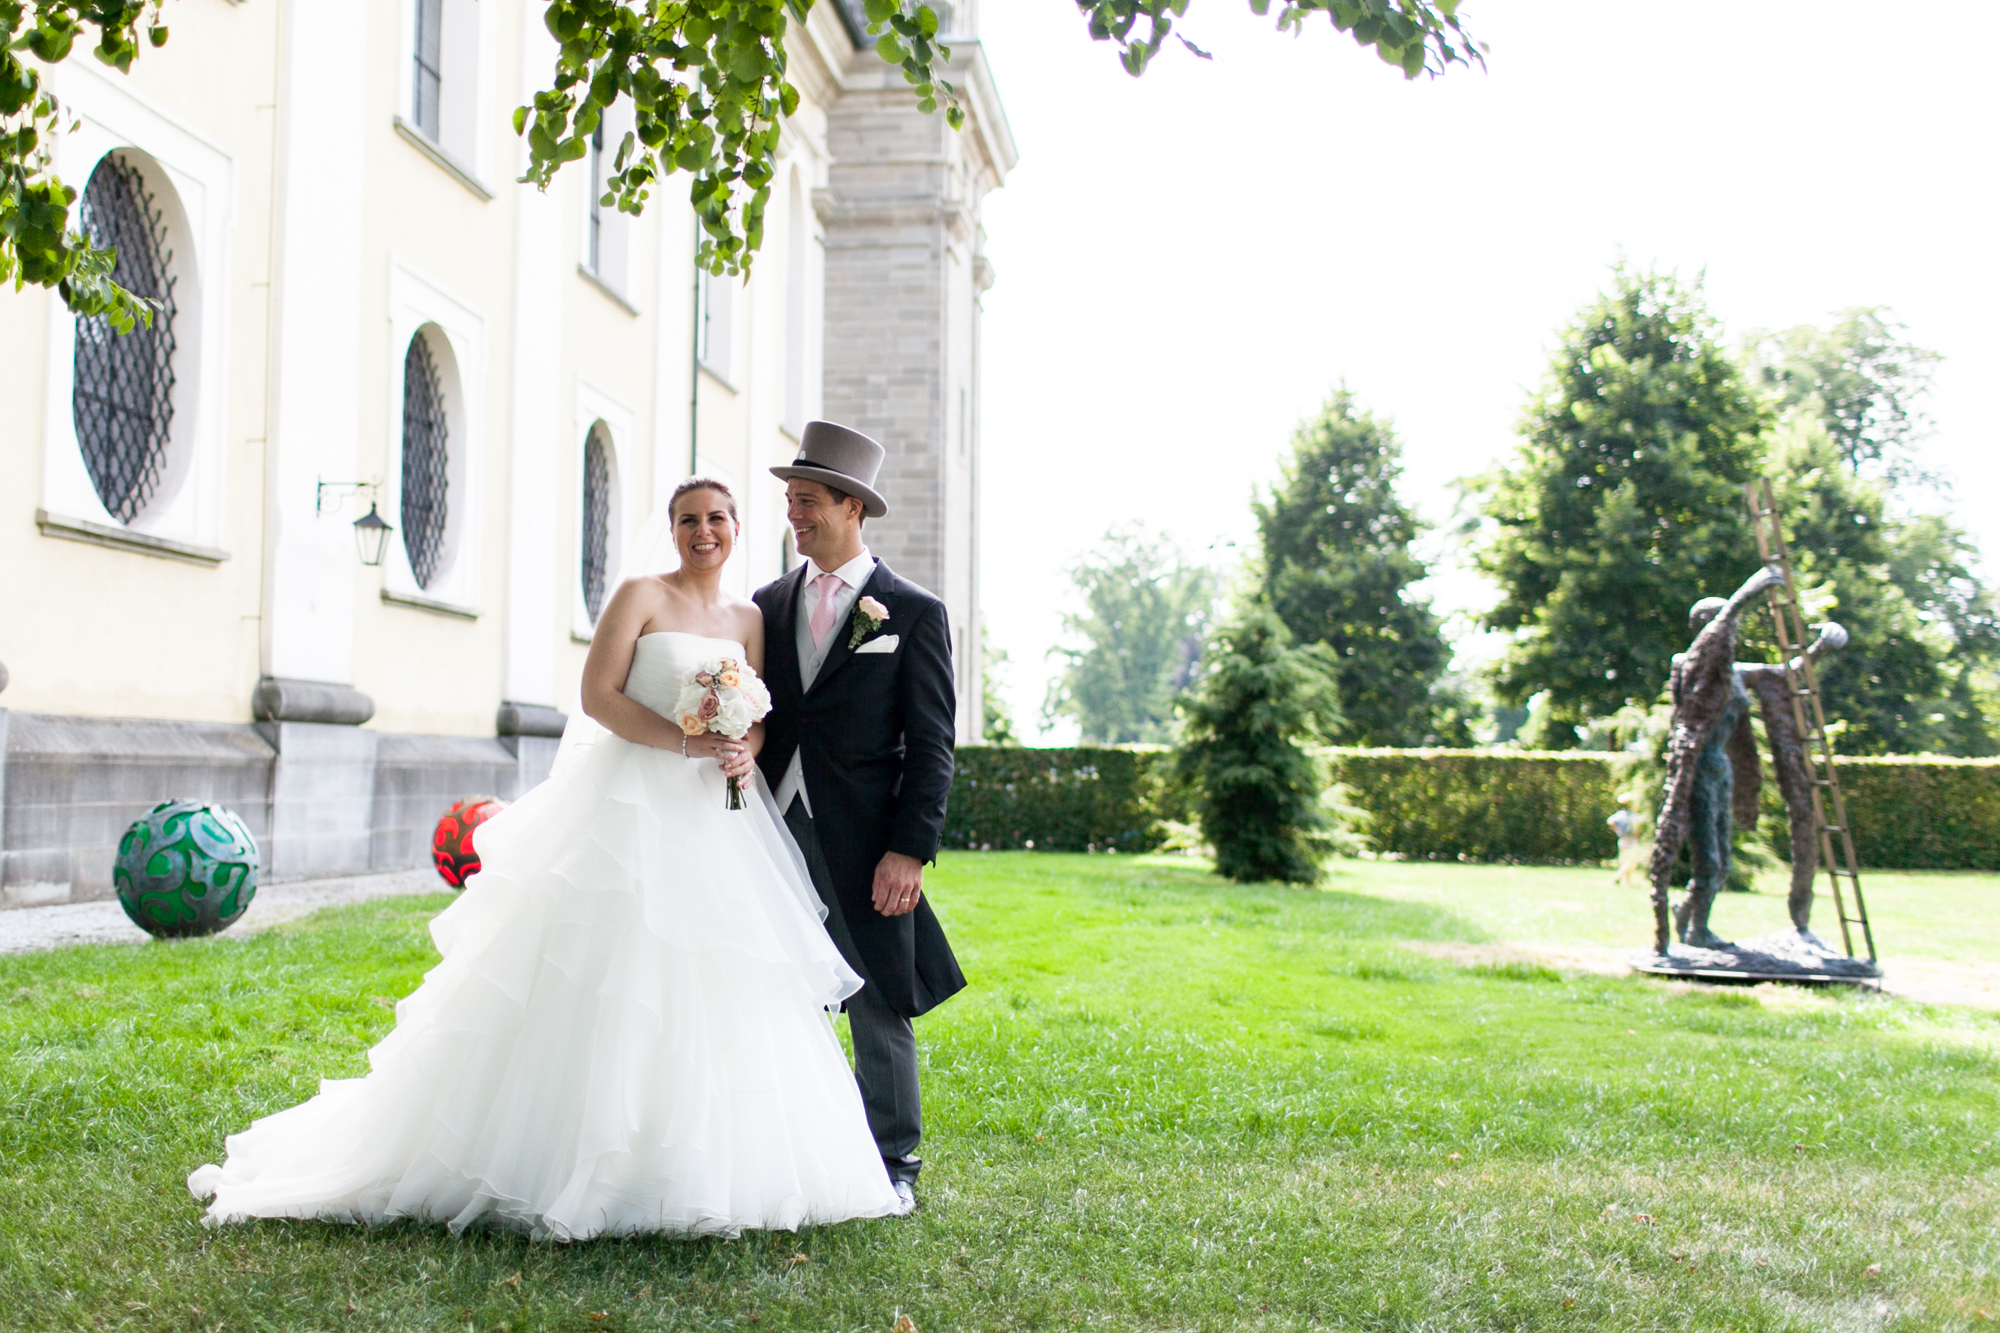 Fotograf Konstanz - Hochzeit Raphaela Phillip 056 - Wedding Story from Raphaela and Phillip at Lake of Constance  - 119 -